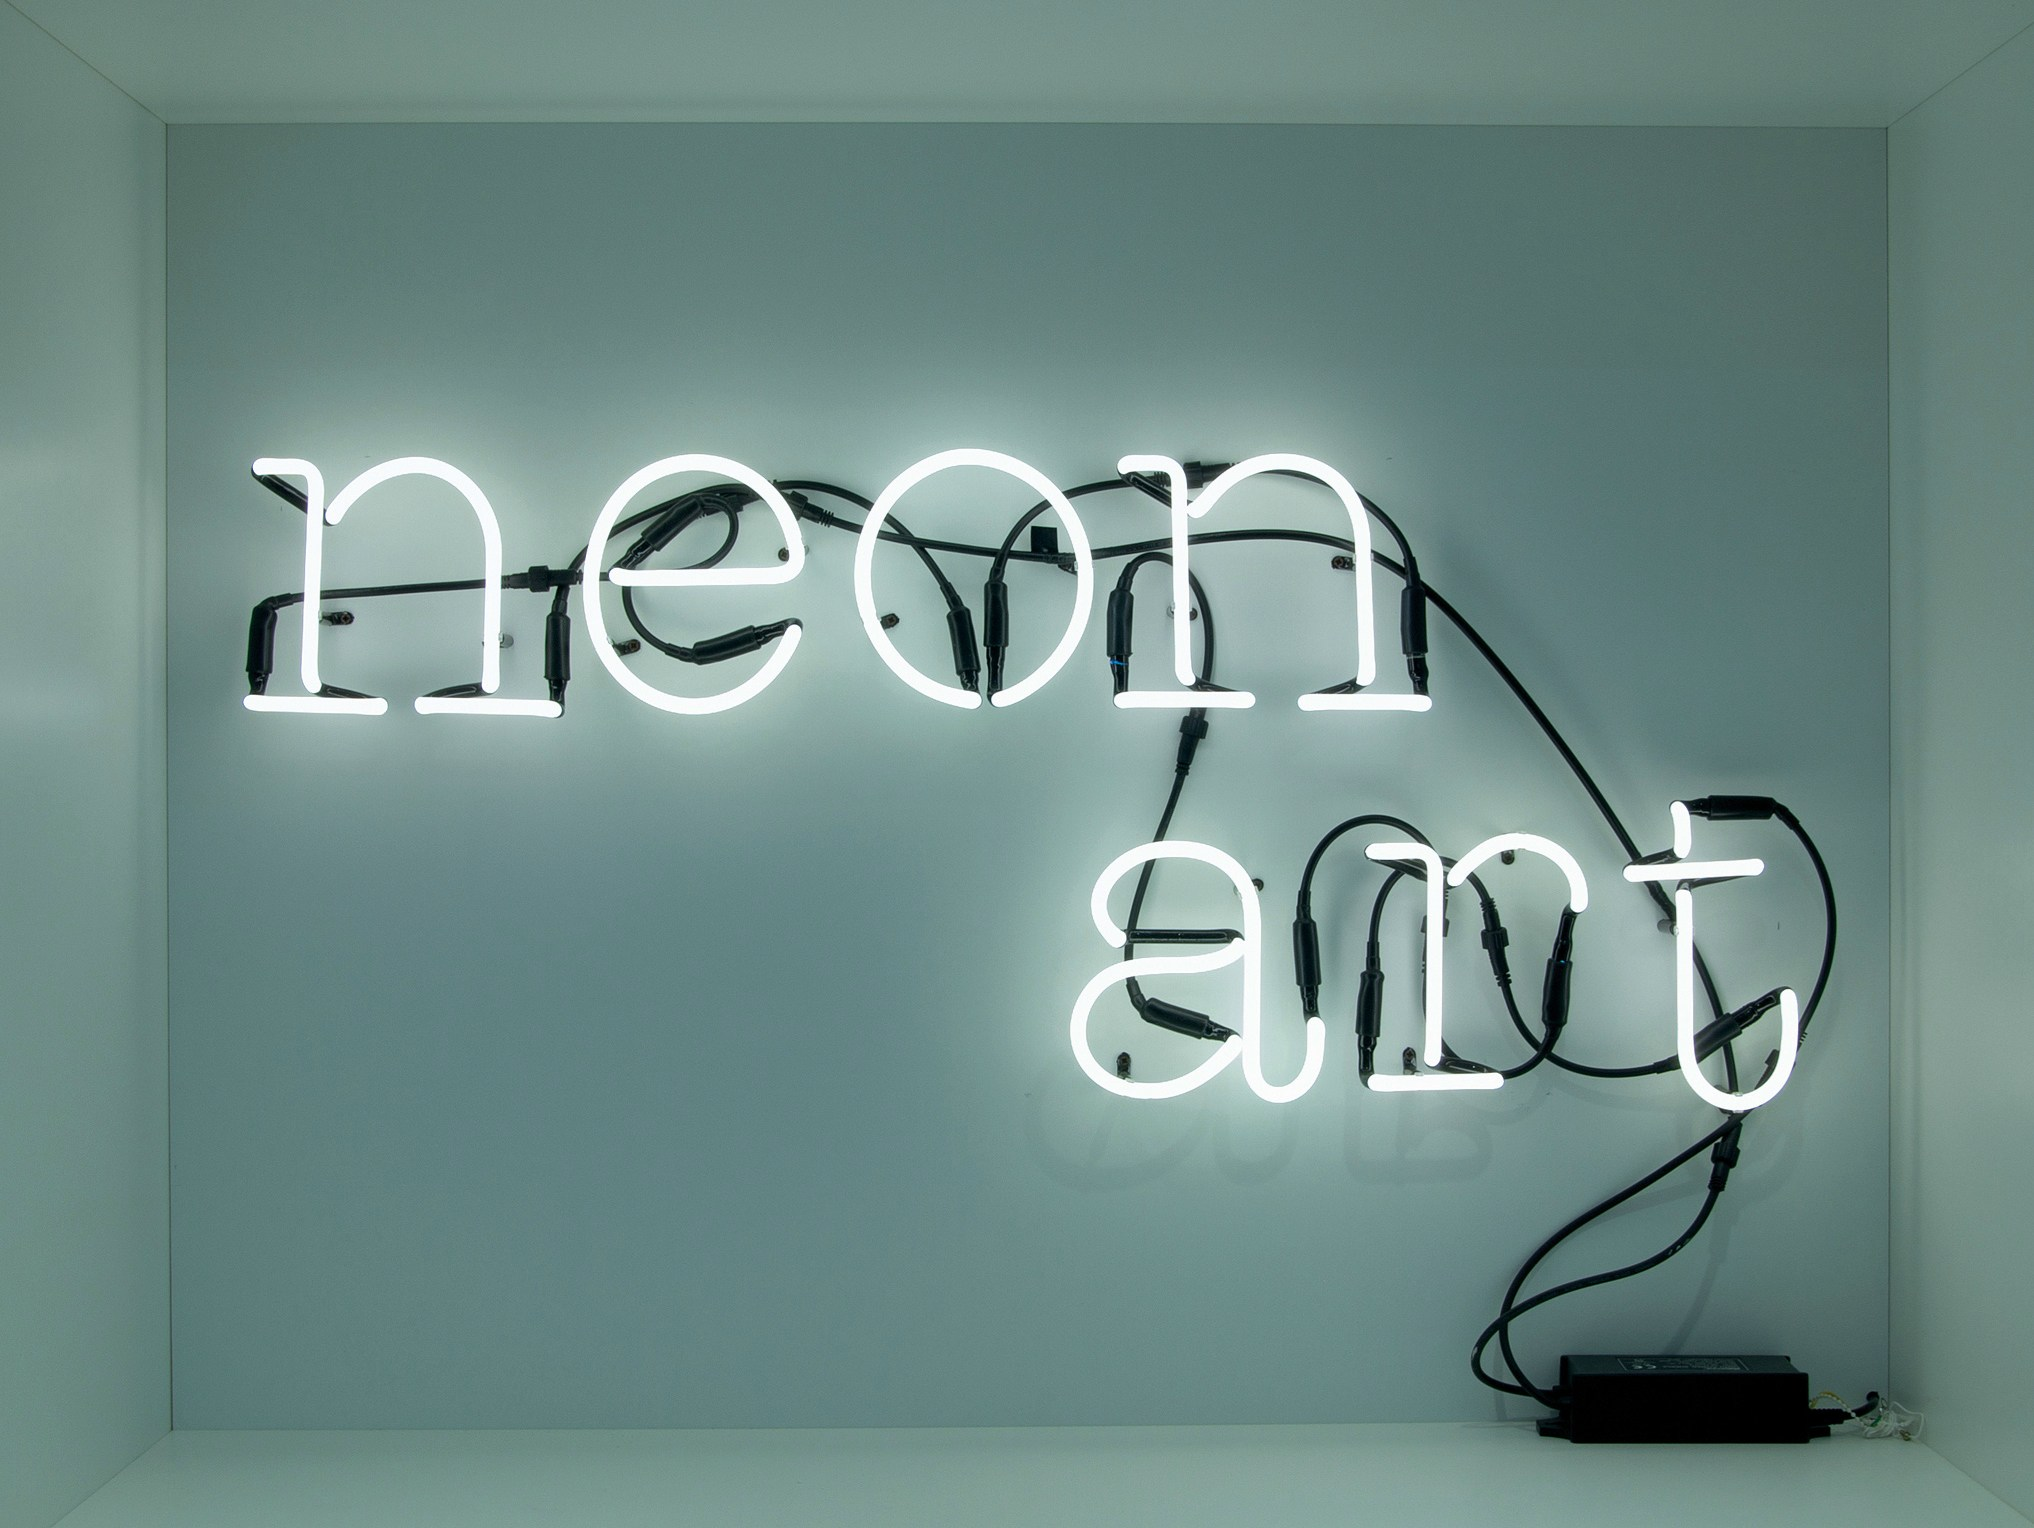 Neon Wall Art wall mounted light letter neon artseletti